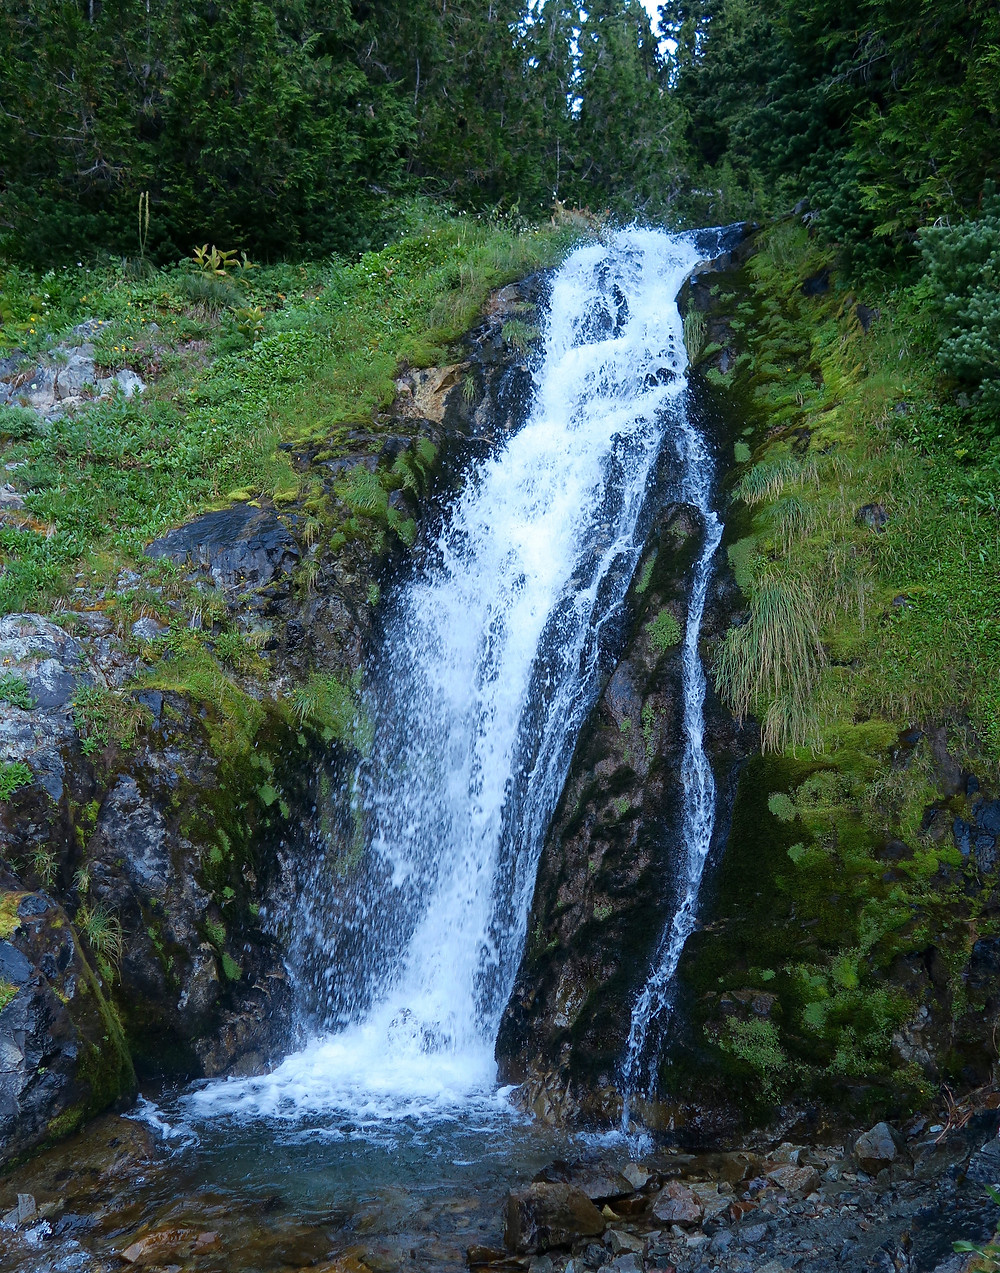 A small waterfall is surrounded by green ferns and moss.